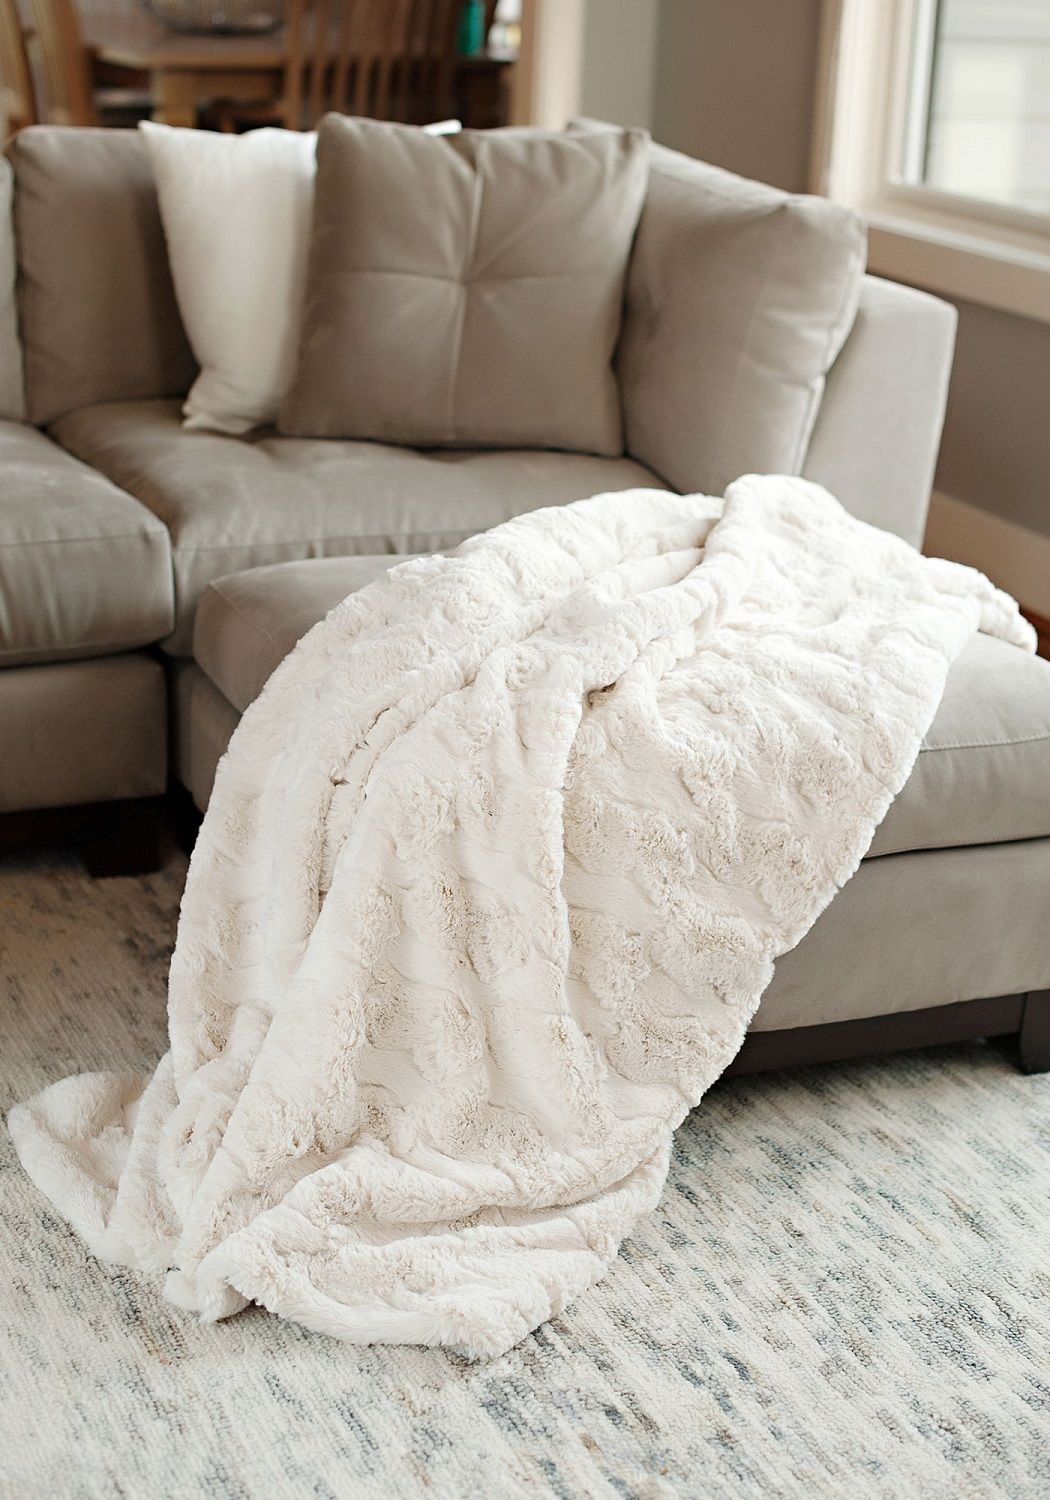 Charming Luxury Fur, Faux Fur, Fur Throws, Faux Fur Throws, Faux Fur Throw